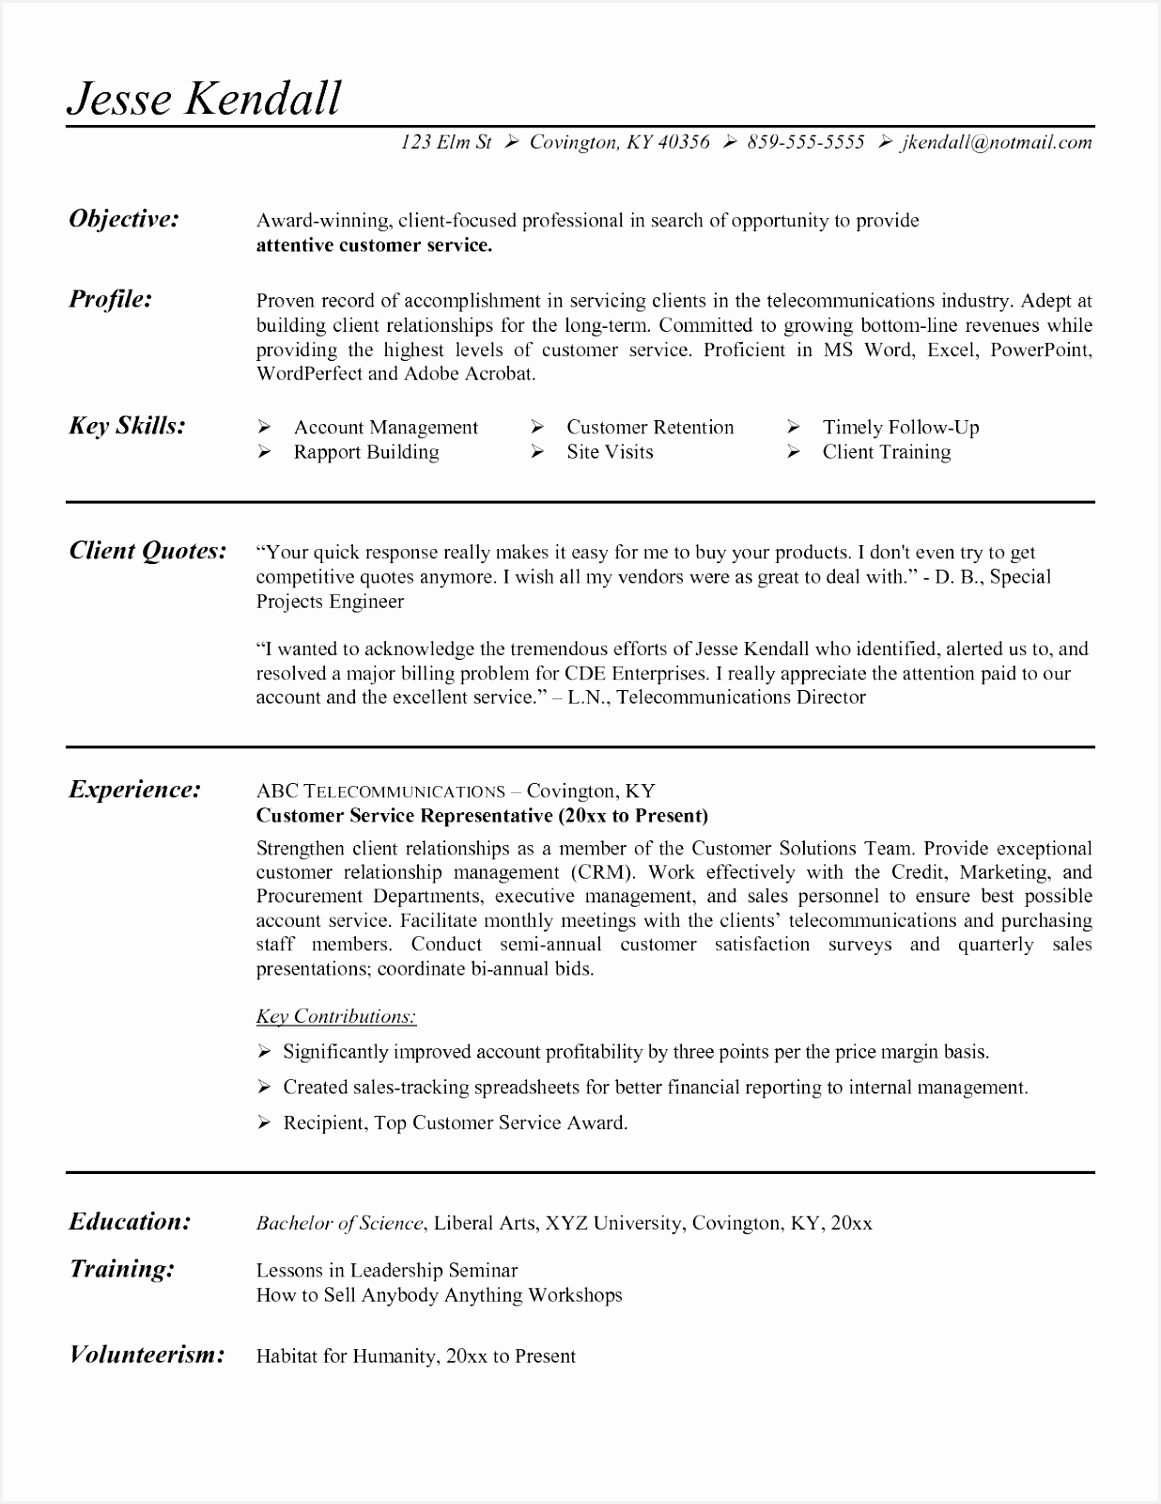 Best Resume Samples New Resume Examples Pdf Best Resume Pdf 0d Inspiration Design Rapport De 150411613jjbw